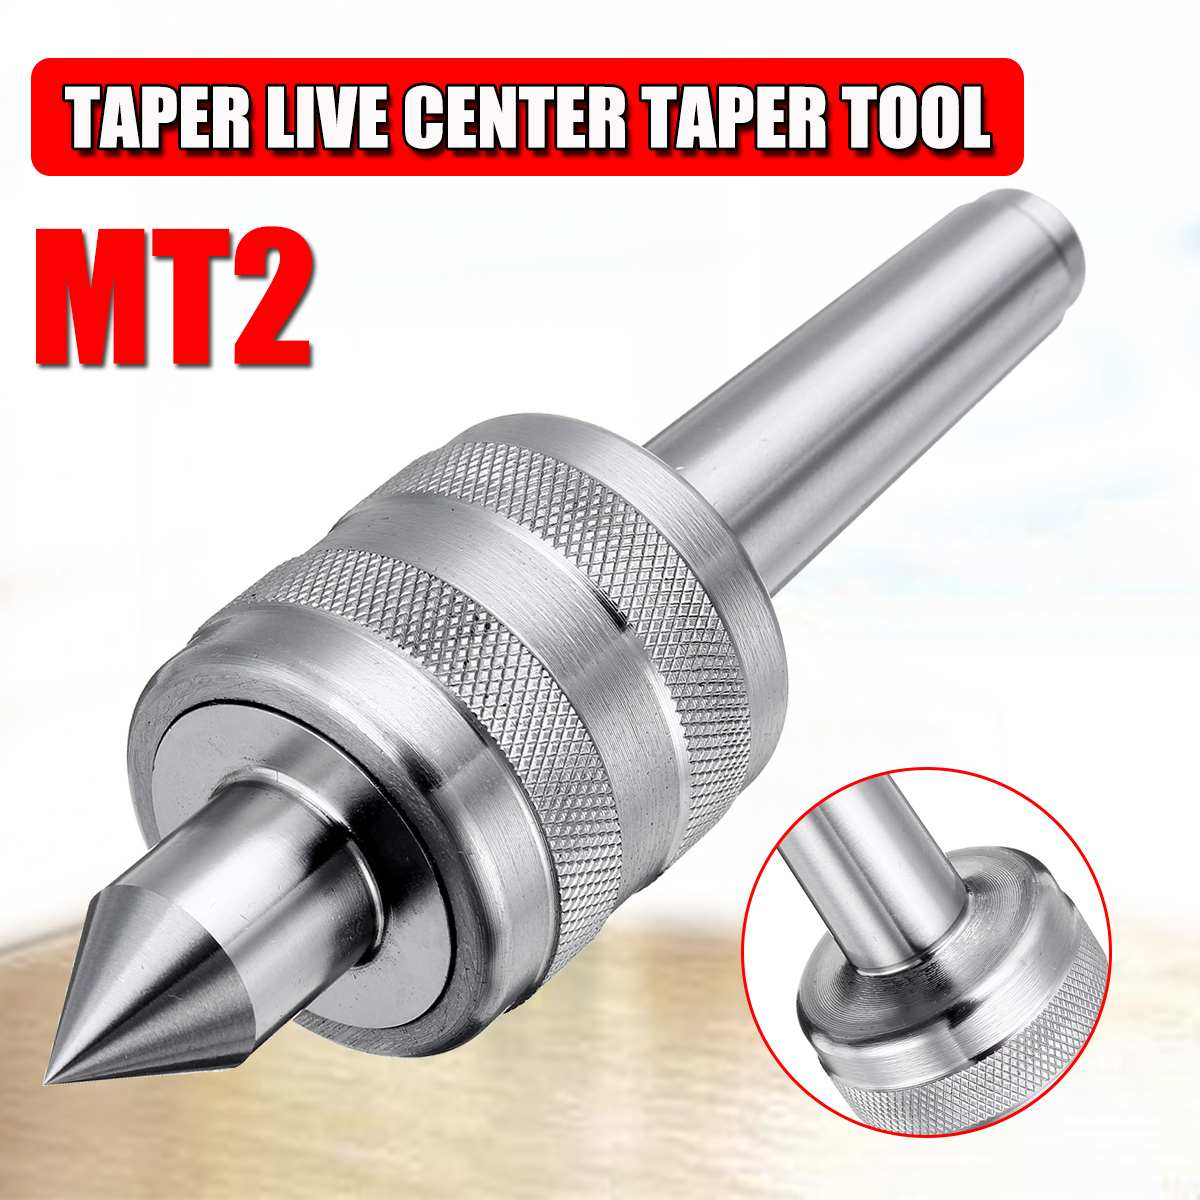 WOLIKE Accuracy Steel Silver MT2 0.001 Lathe Live Center Taper Tool Live Revolving Milling Center Taper Machine Accessories New